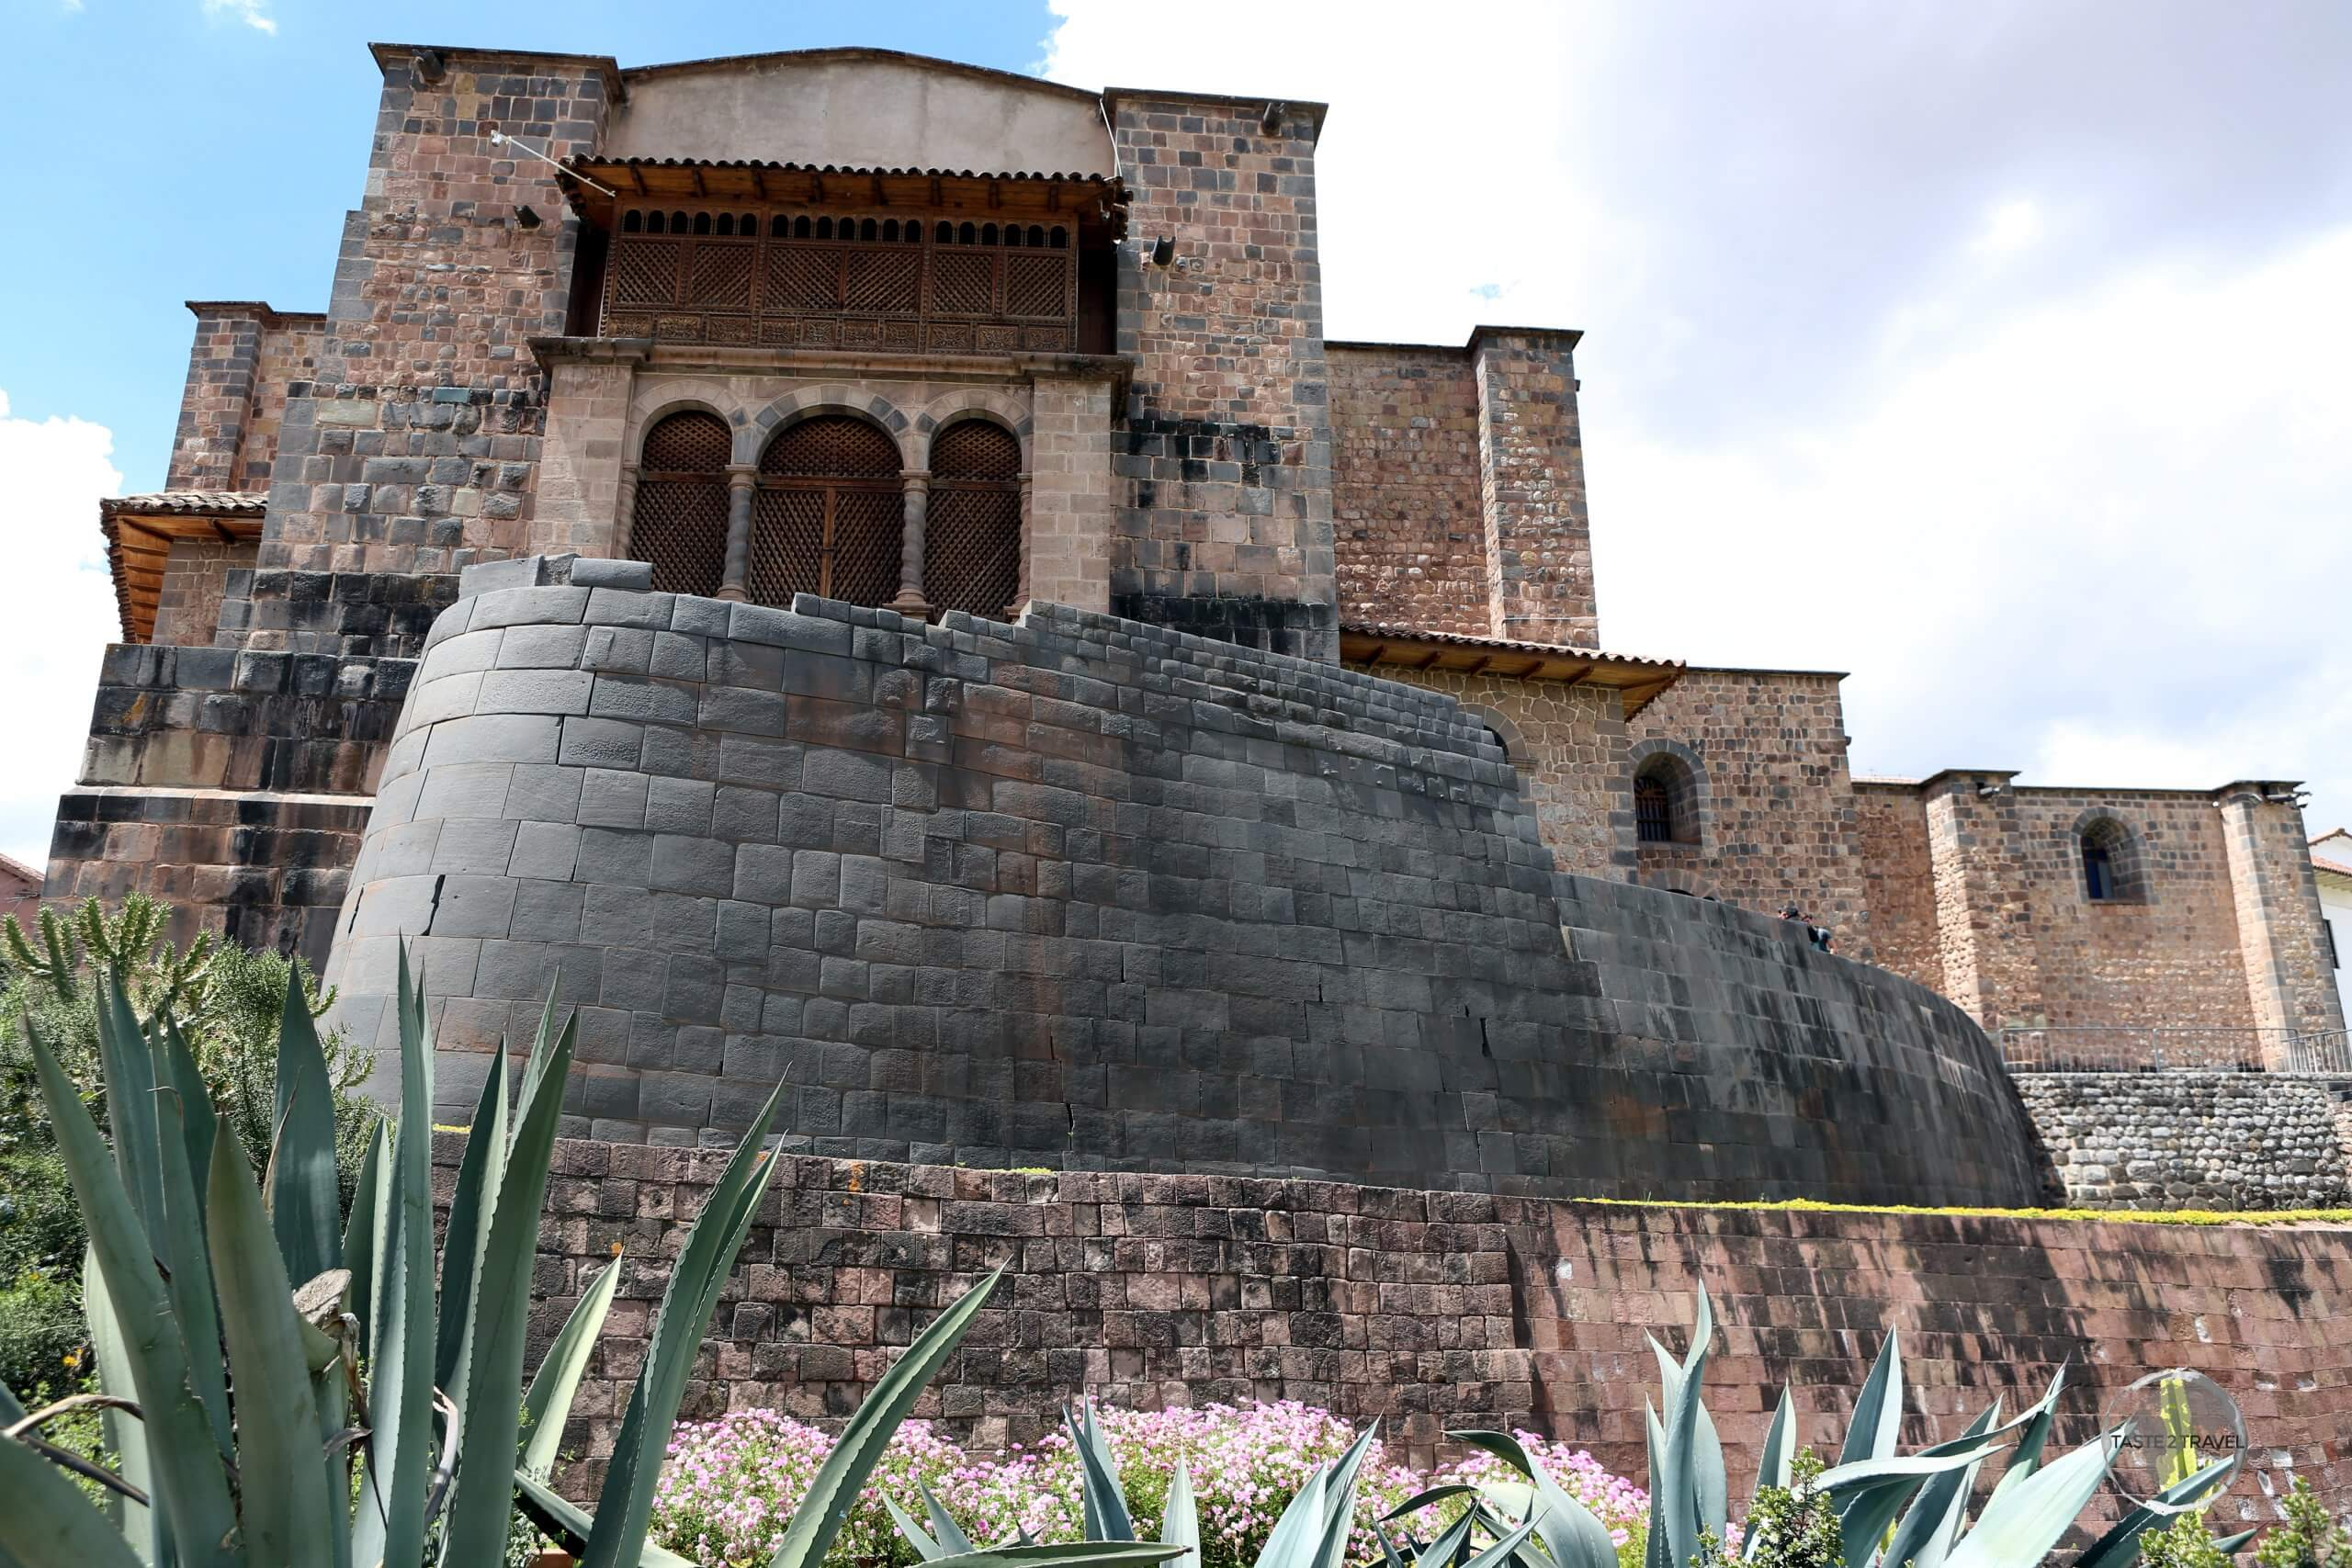 Exterior view of the remains of the Coricancha, which clearly shows the perfect Inca masonry which was overlaid by the much rougher Spanish masonry.